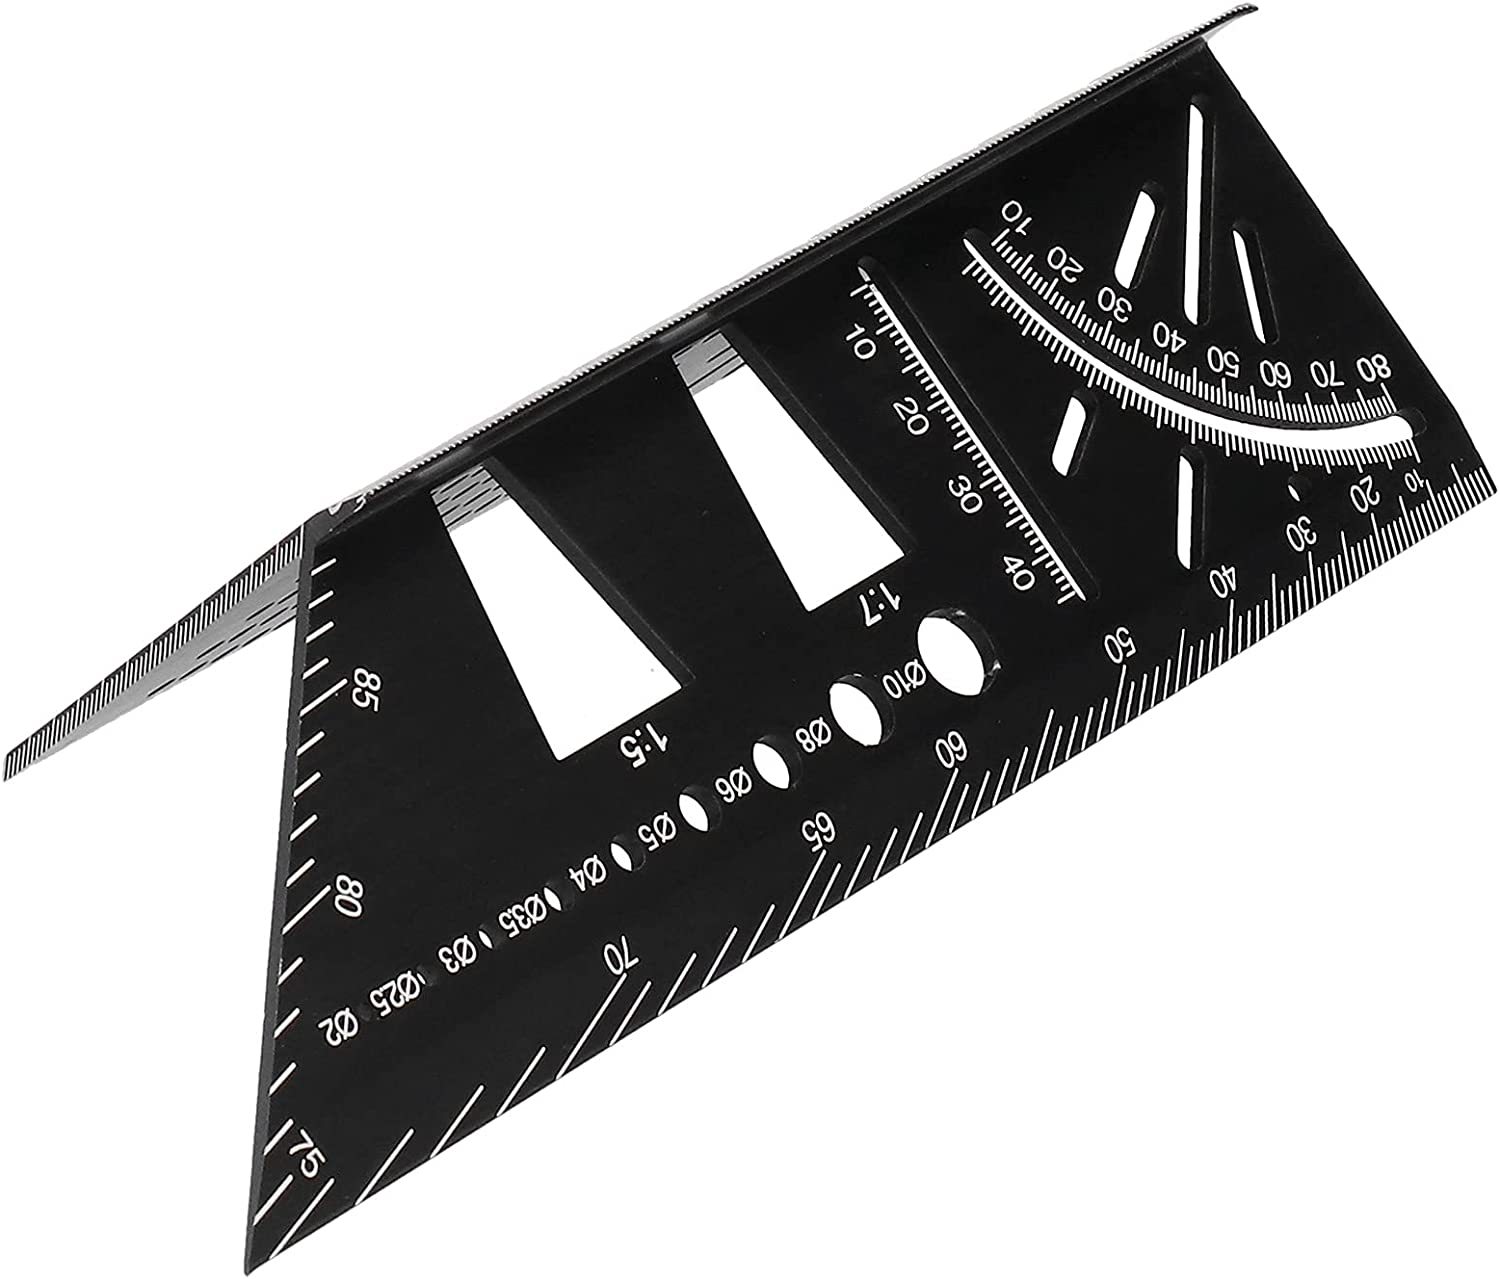 Polished Measuring Ruler Quality Overseas parallel import regular item Aluminum 7.3 1pc x Alloy 21.5 Ranking TOP12